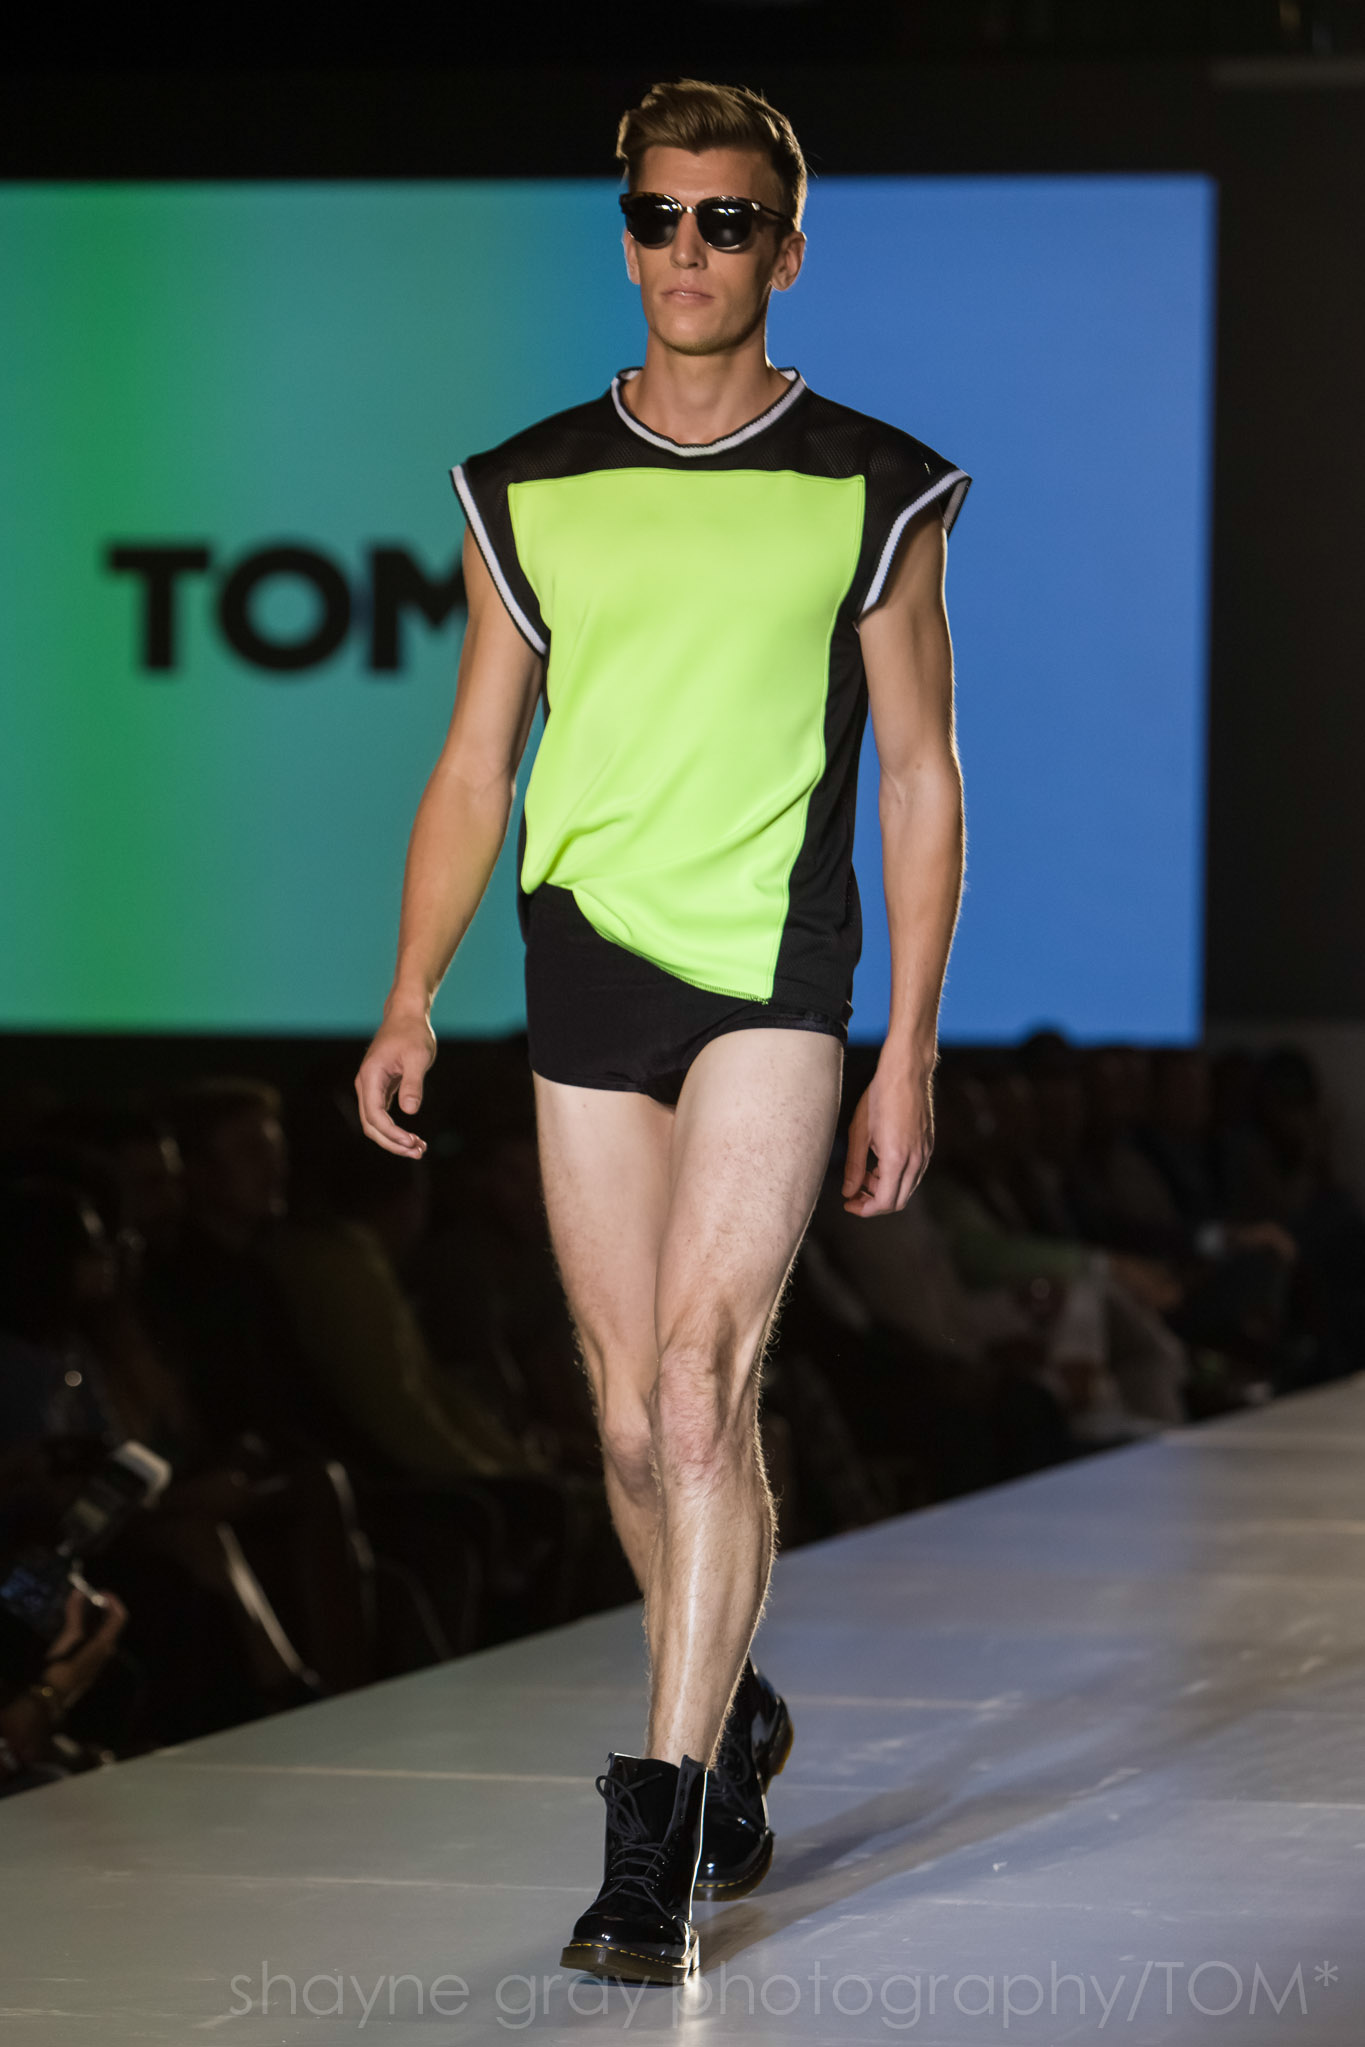 Shayne-Gray-Toronto-men's-fashion_week-TOM-worth-by-david-c-wigley-6411.jpg